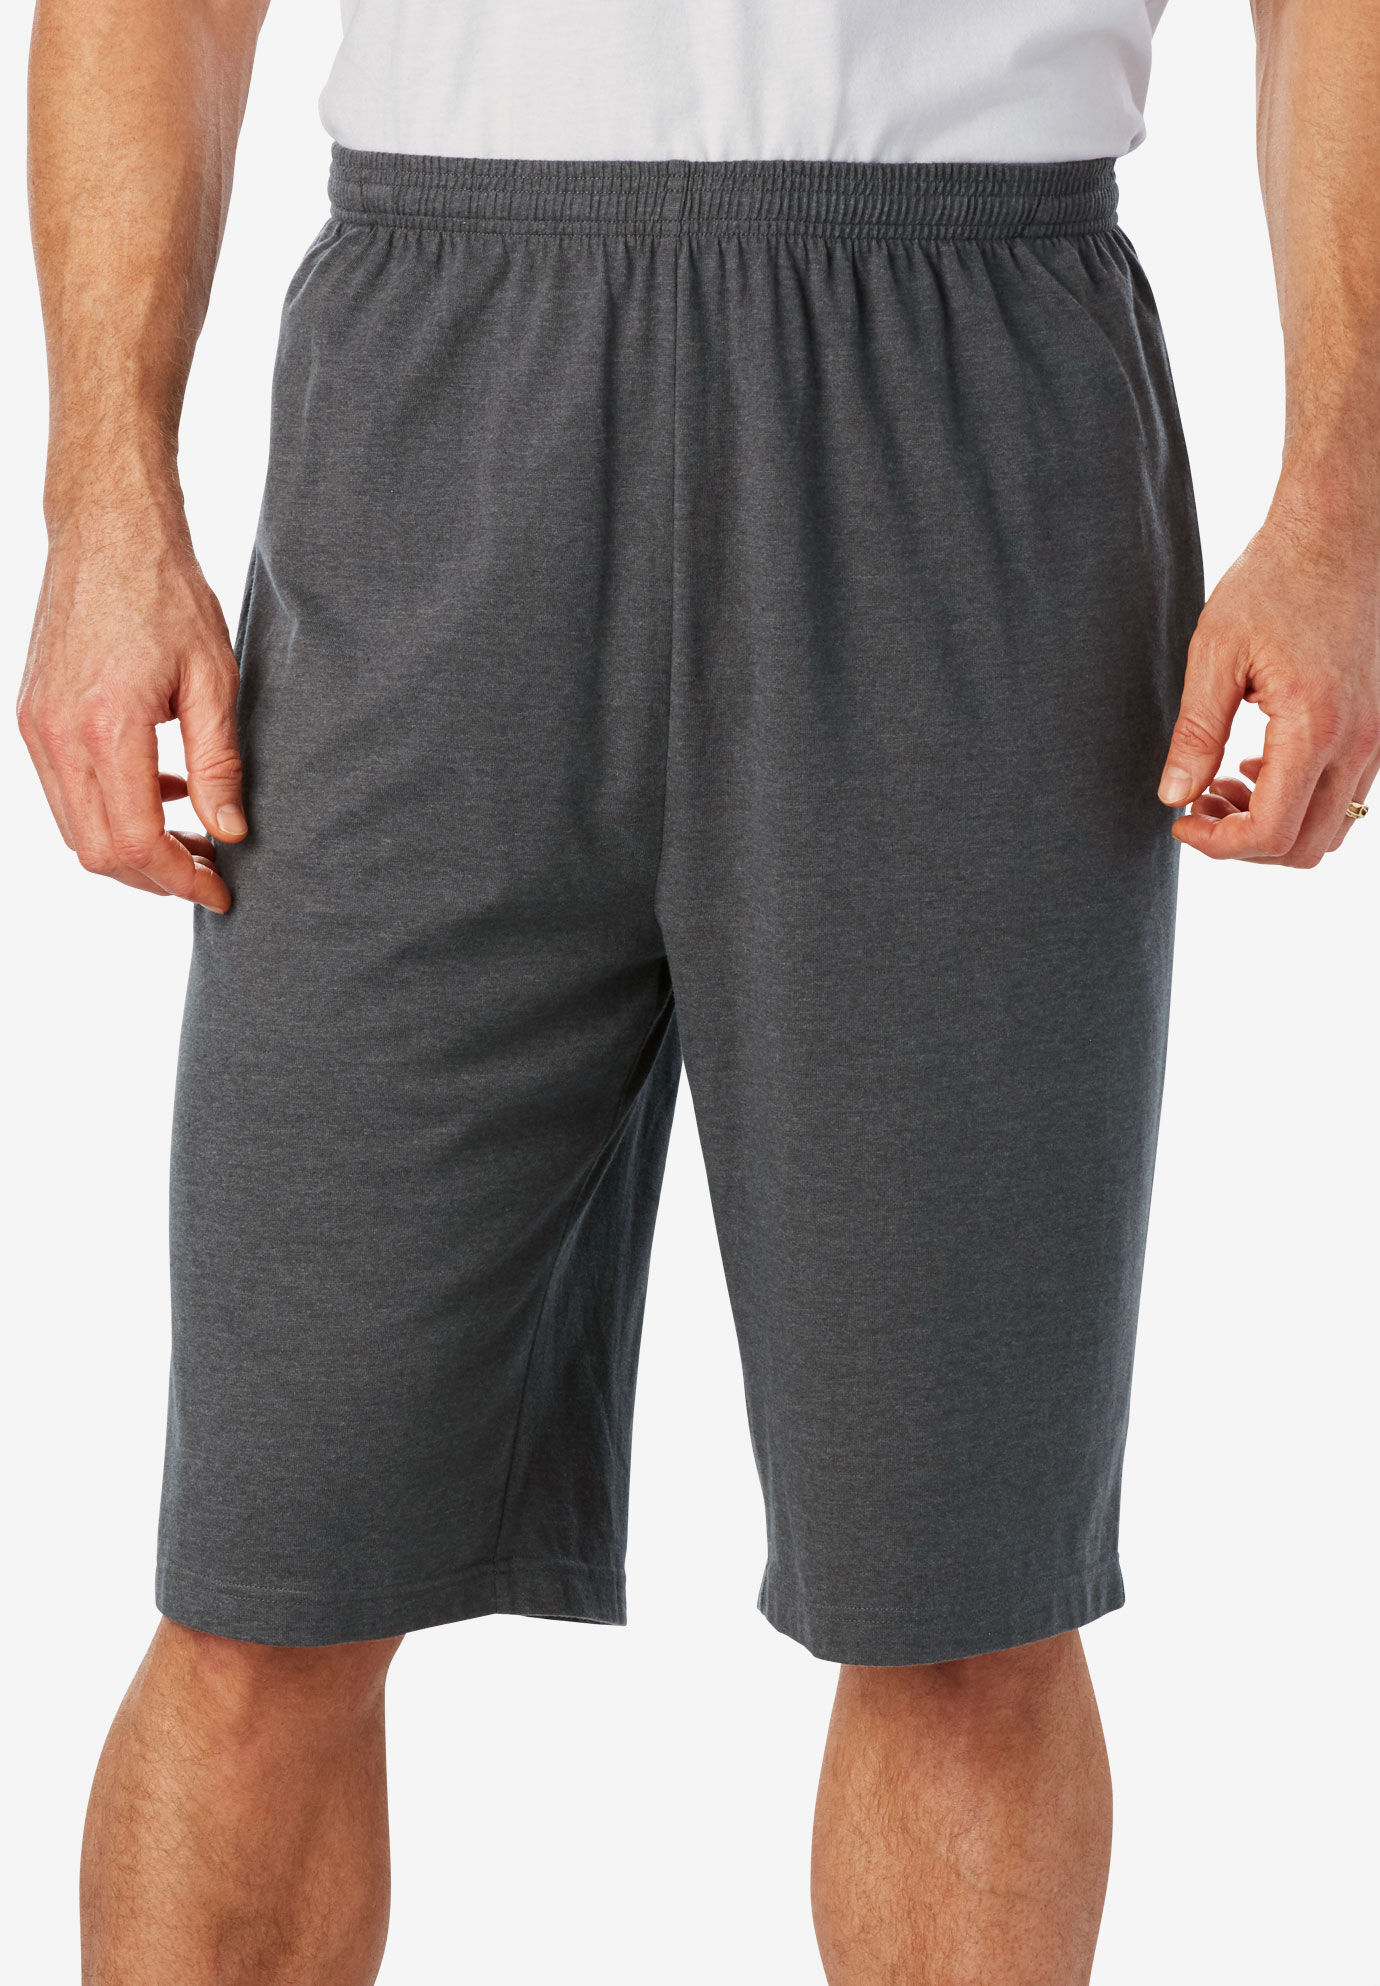 Big & Tall Activewear for Men | King Size